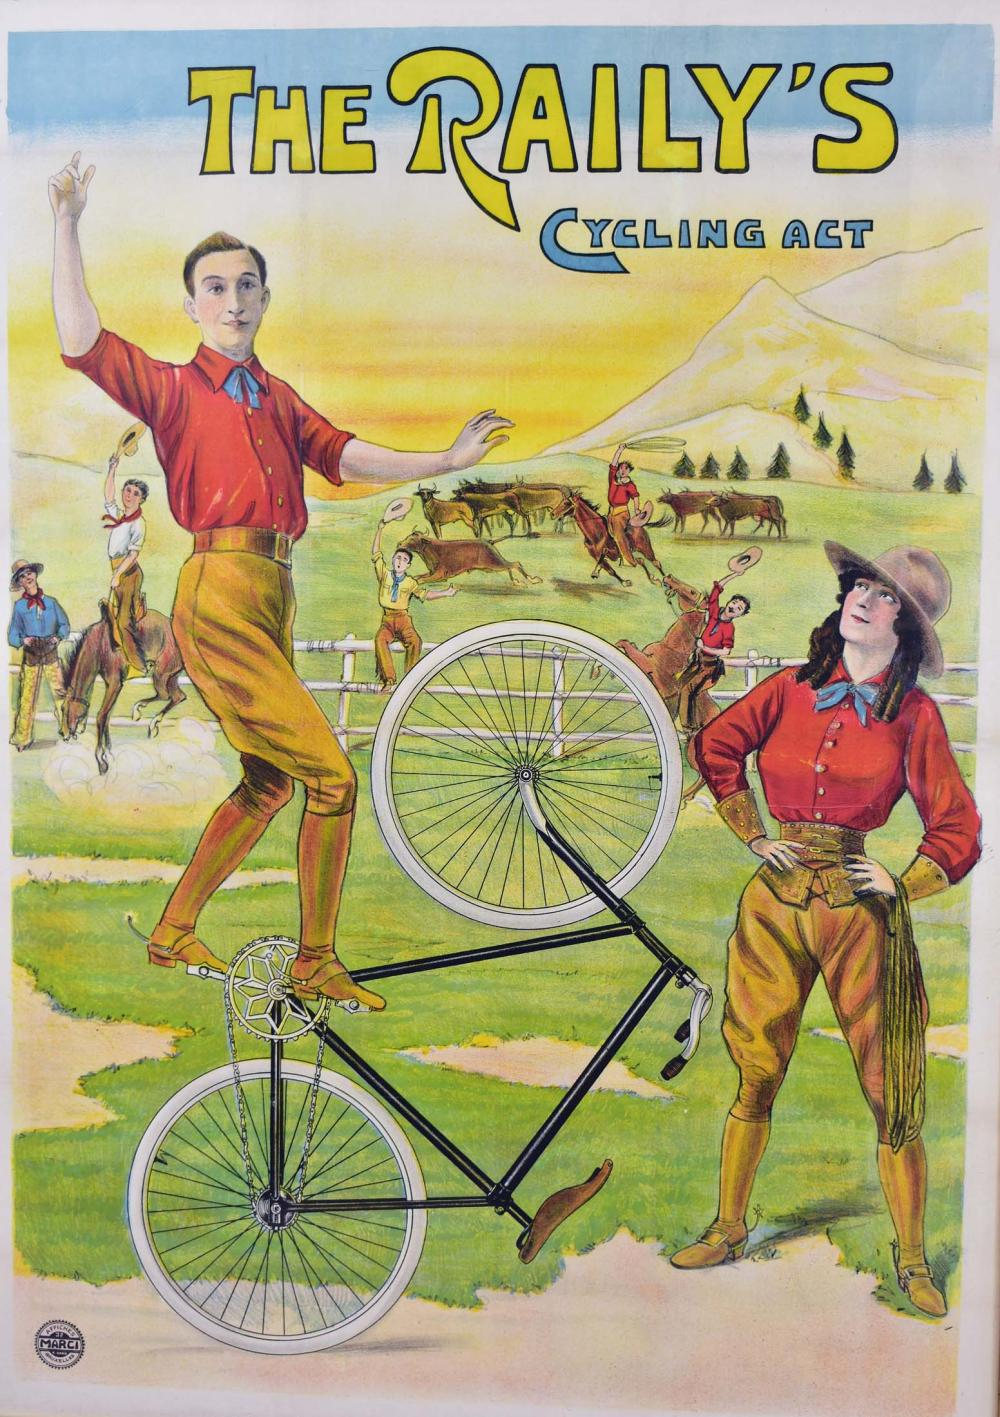 Lot 91: THE RAILYS CYCLING ACT